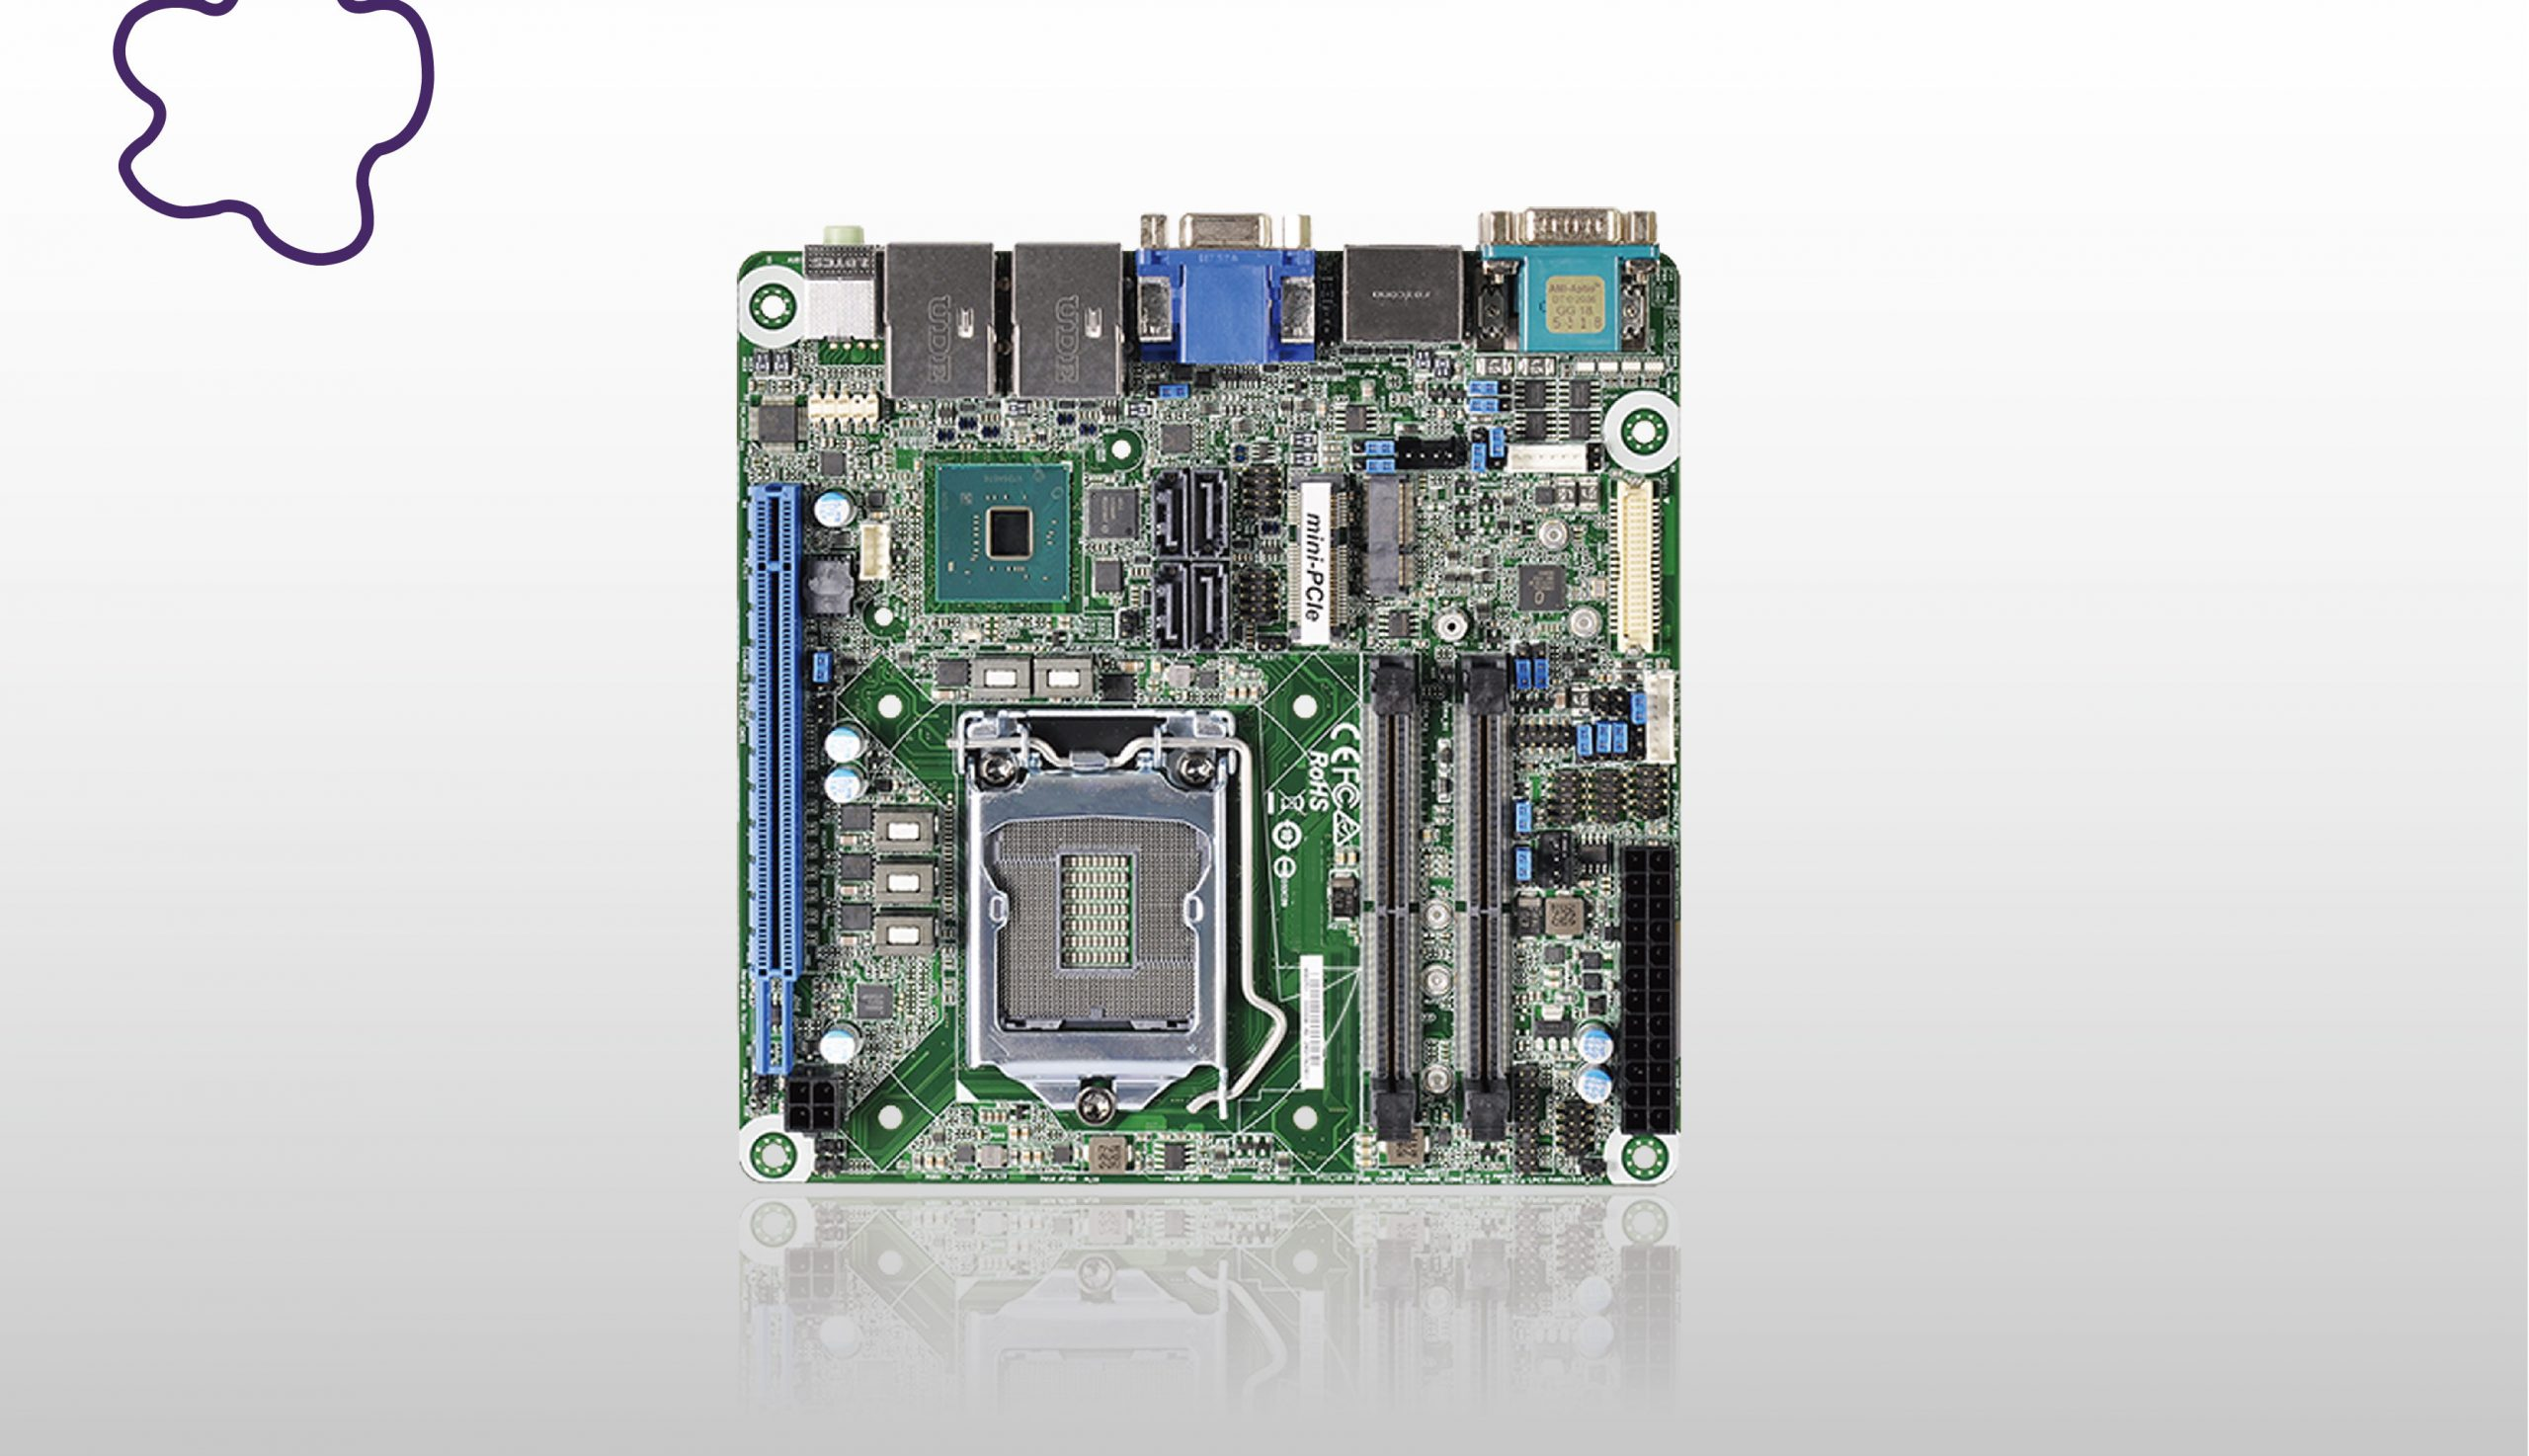 Mini-ITX form factor board has four video outputs with up to 6-core performance